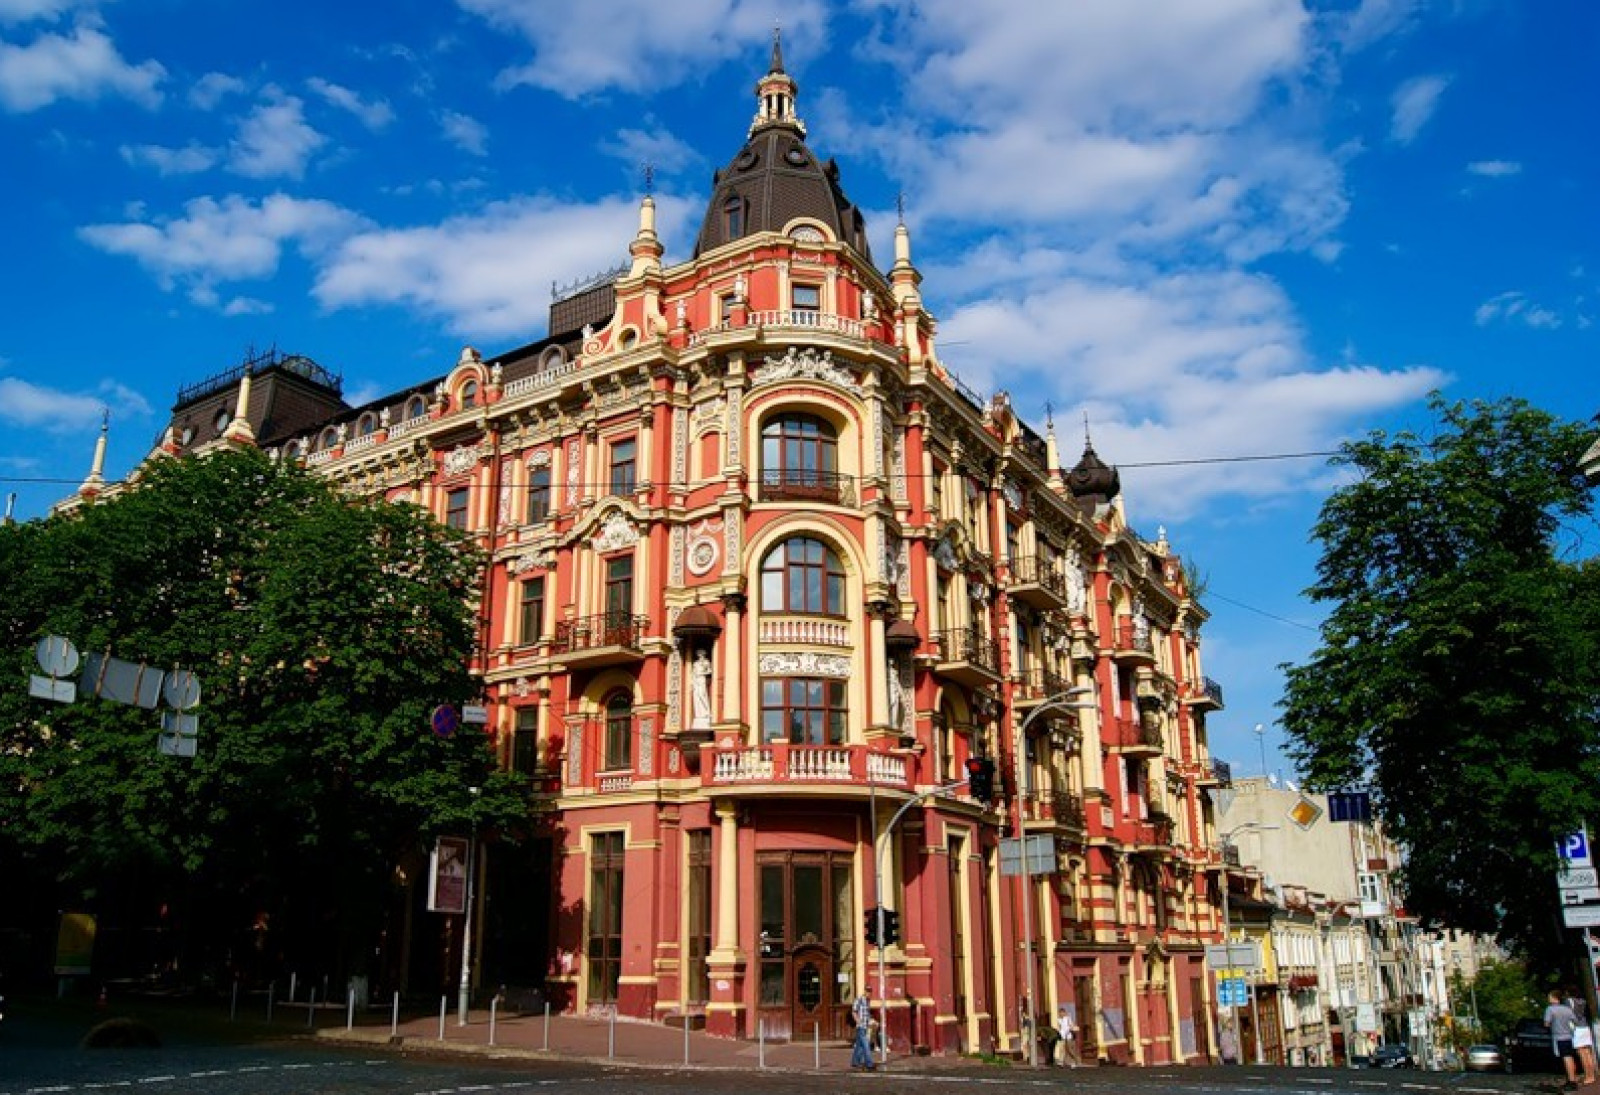 KYIV - sightseeing tour by car with panoramic roof